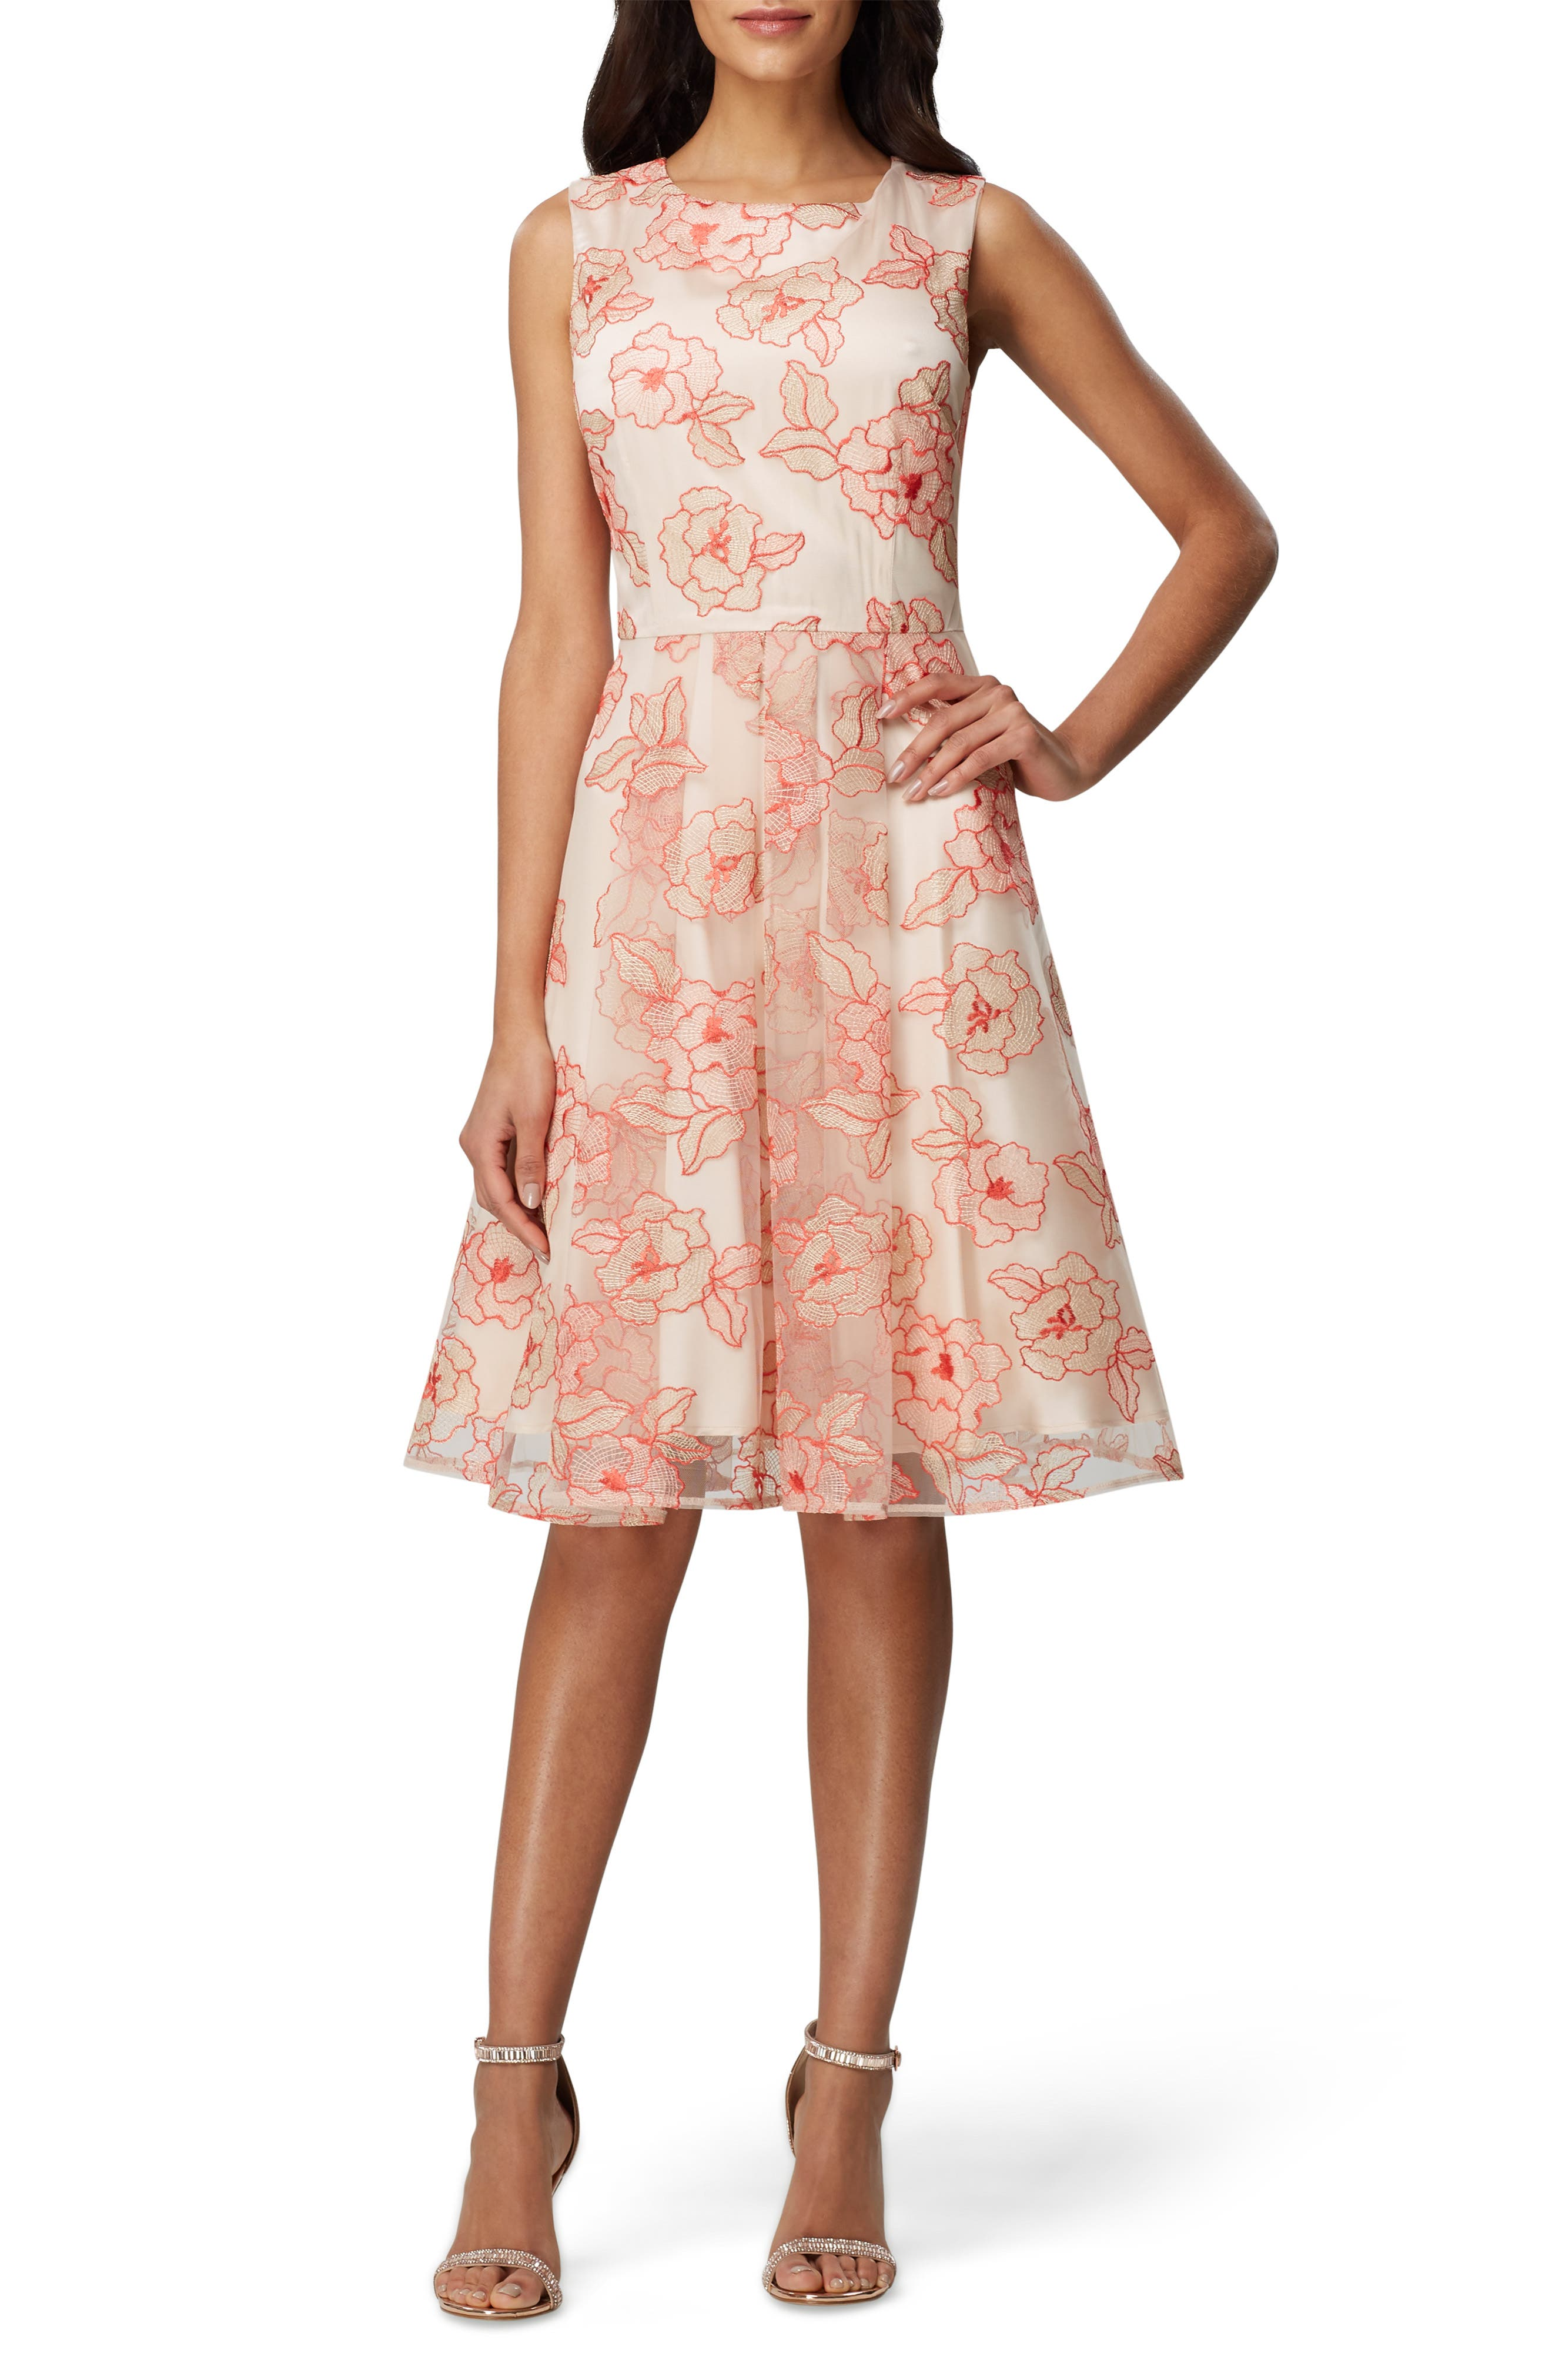 Tahari Floral Embroidered Fit & Flare Dress, Coral